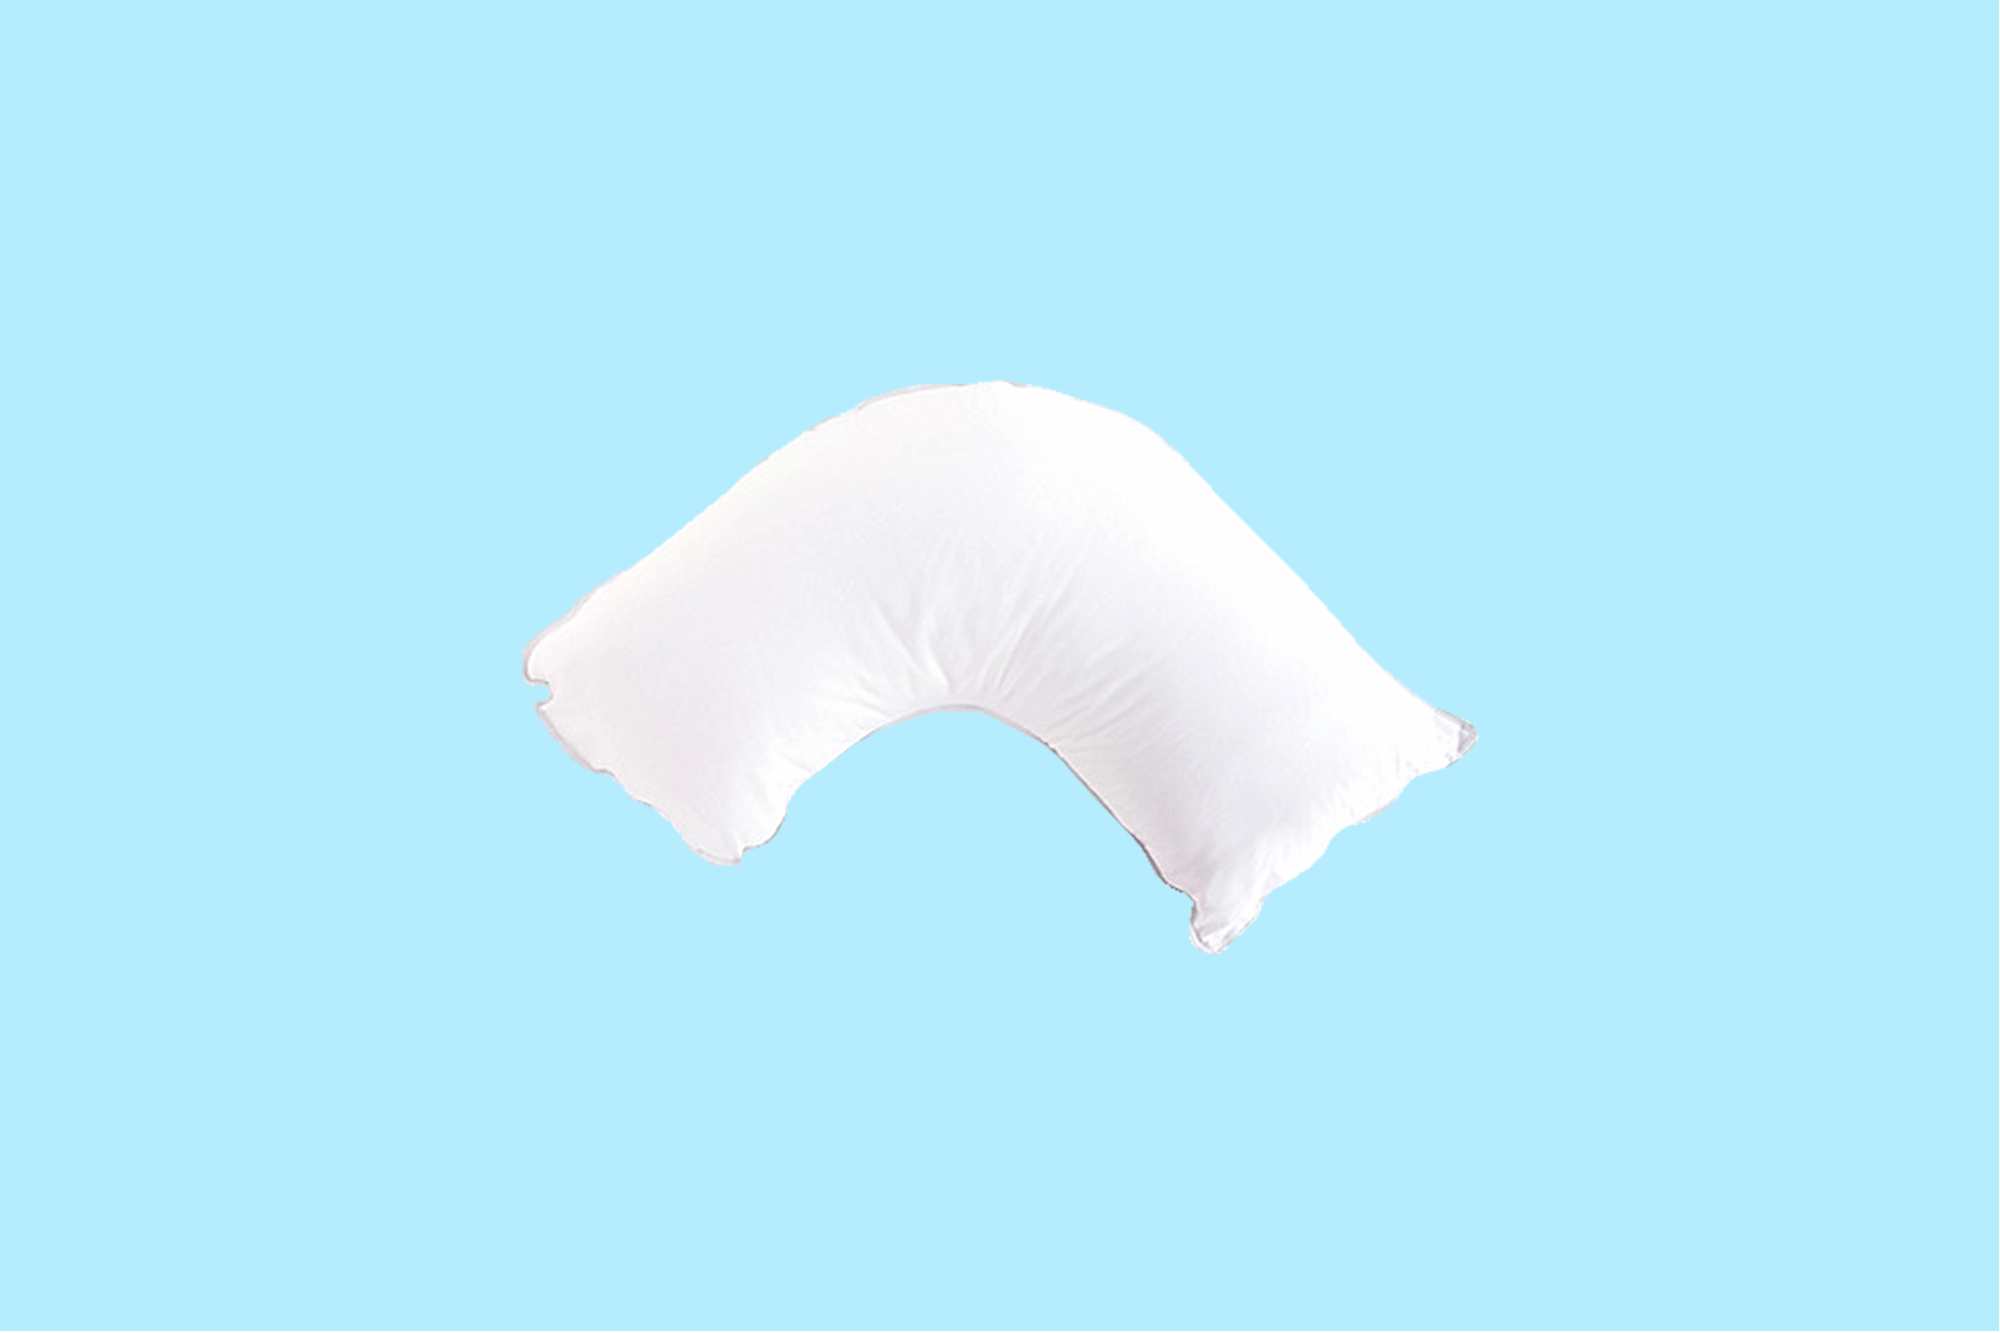 Best Pillows Australia The Best Pillows For Side Sleepers 2018 Top Picks Apartment